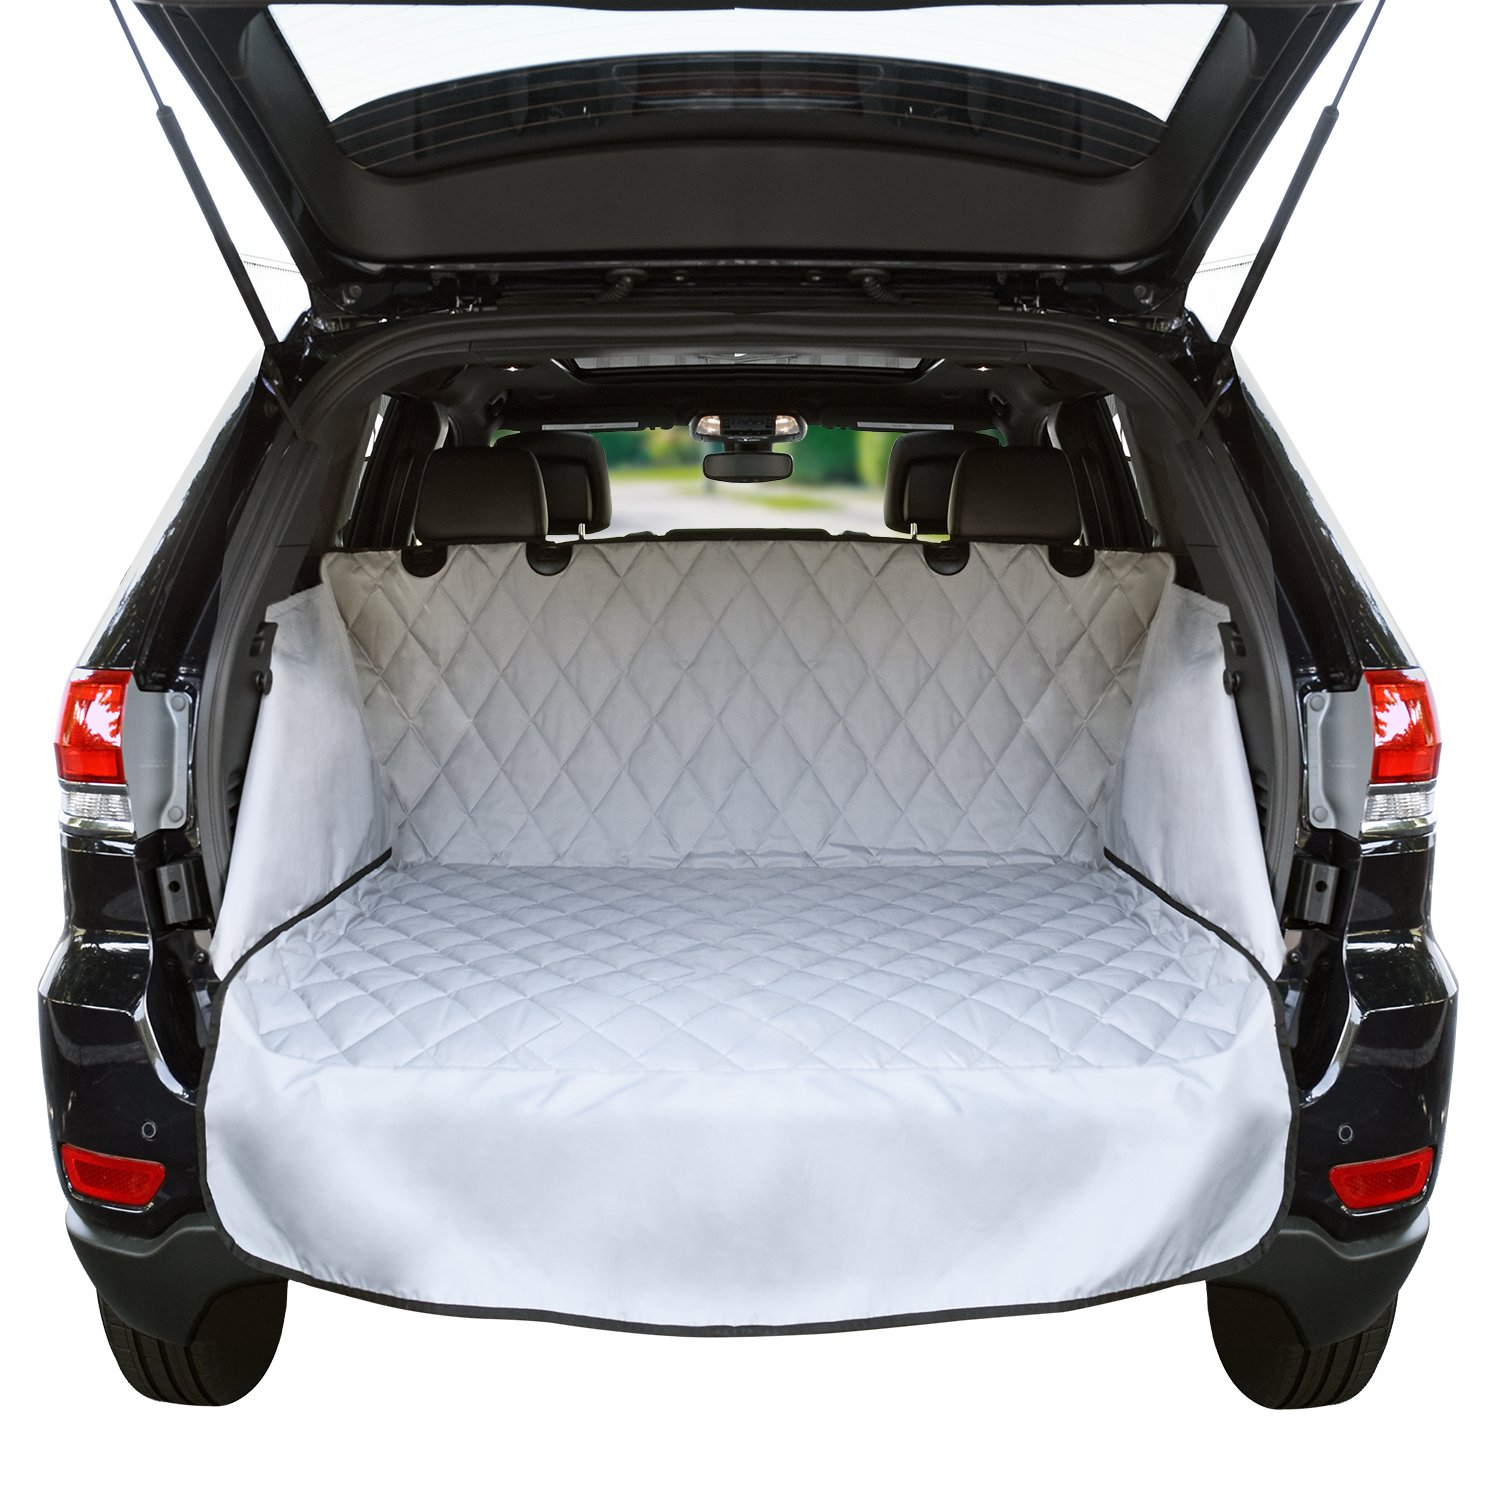 Cargo Liner For SUV's and Cars, Waterproof Material, non Slip Backing, With Side Walls Protectors, Extra Bumper Flap Protector, Large Size - Universal Fit by Jumbl Pet